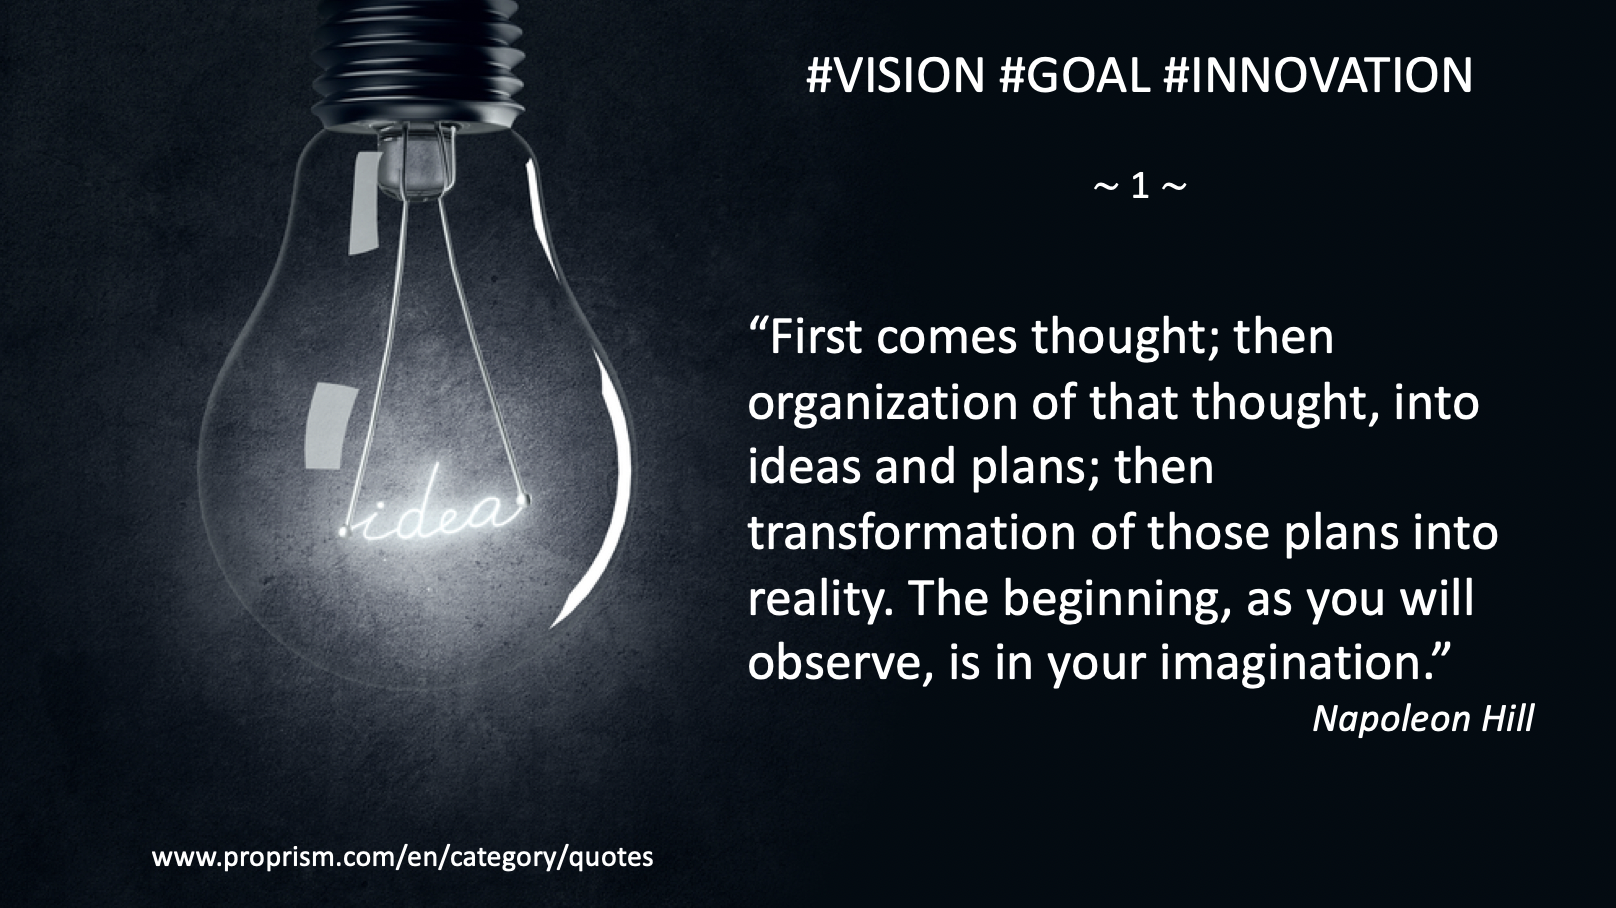 #Innovation #Goal #Vision #Quote